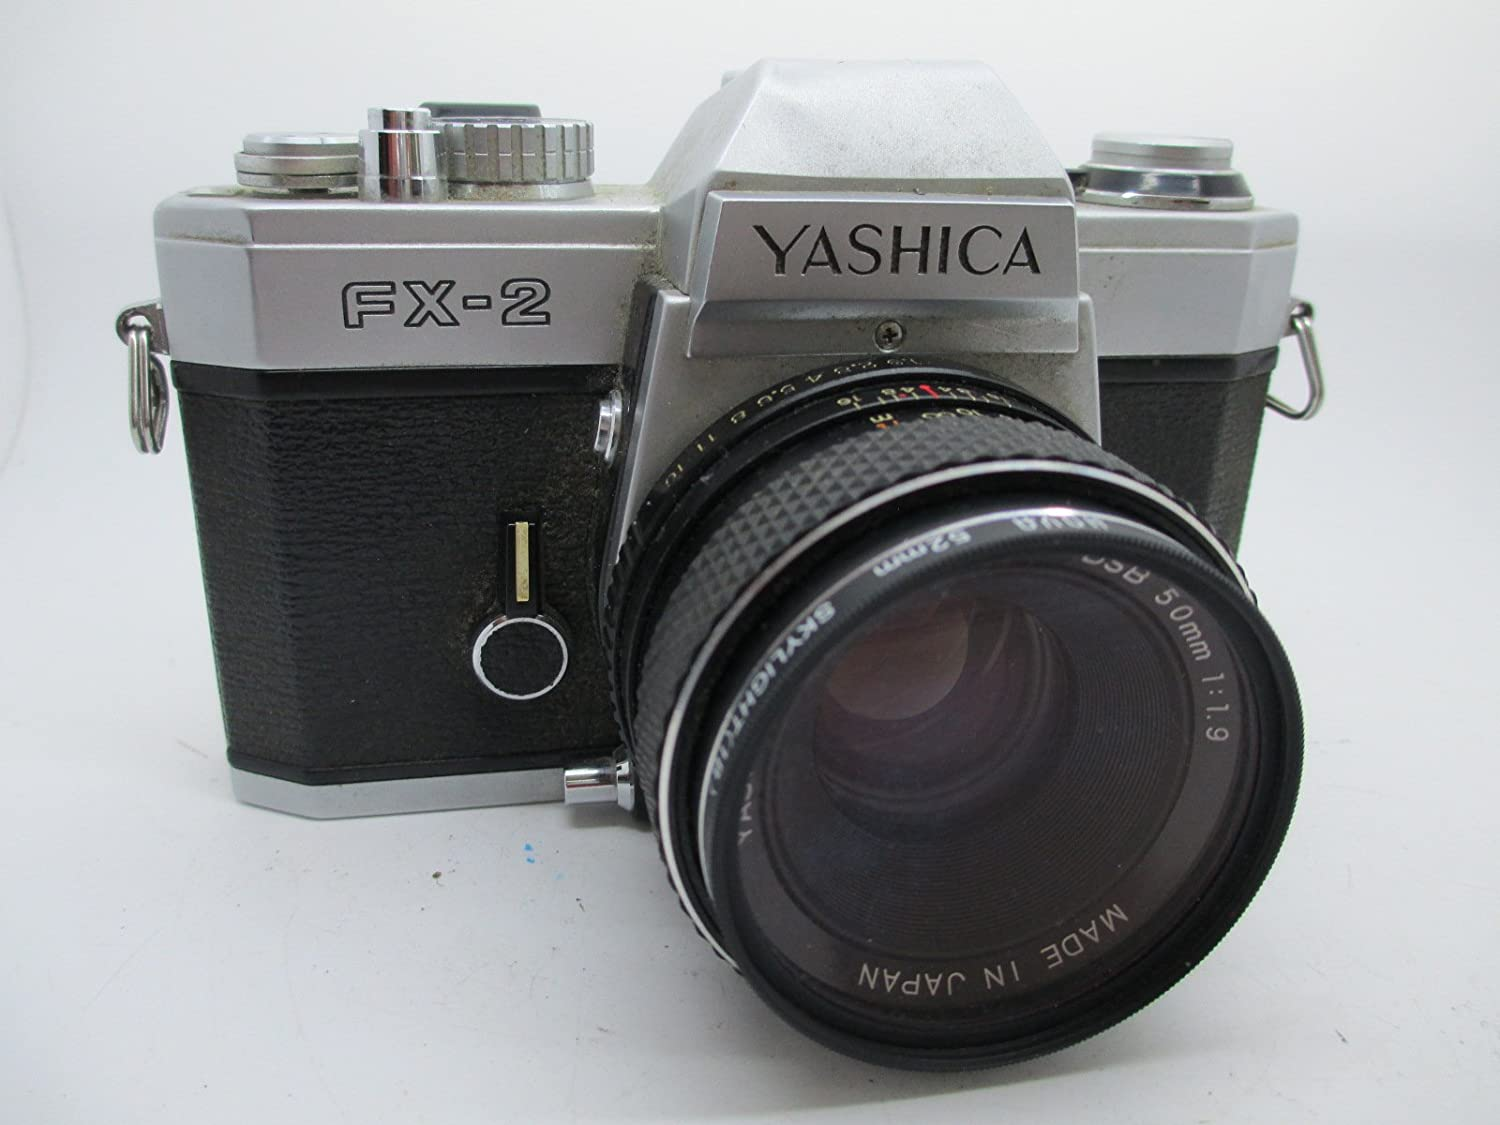 Yashica FX-2 + Yashica Lens ML 50mm F1.7 Montura C/Y: Amazon.es ...